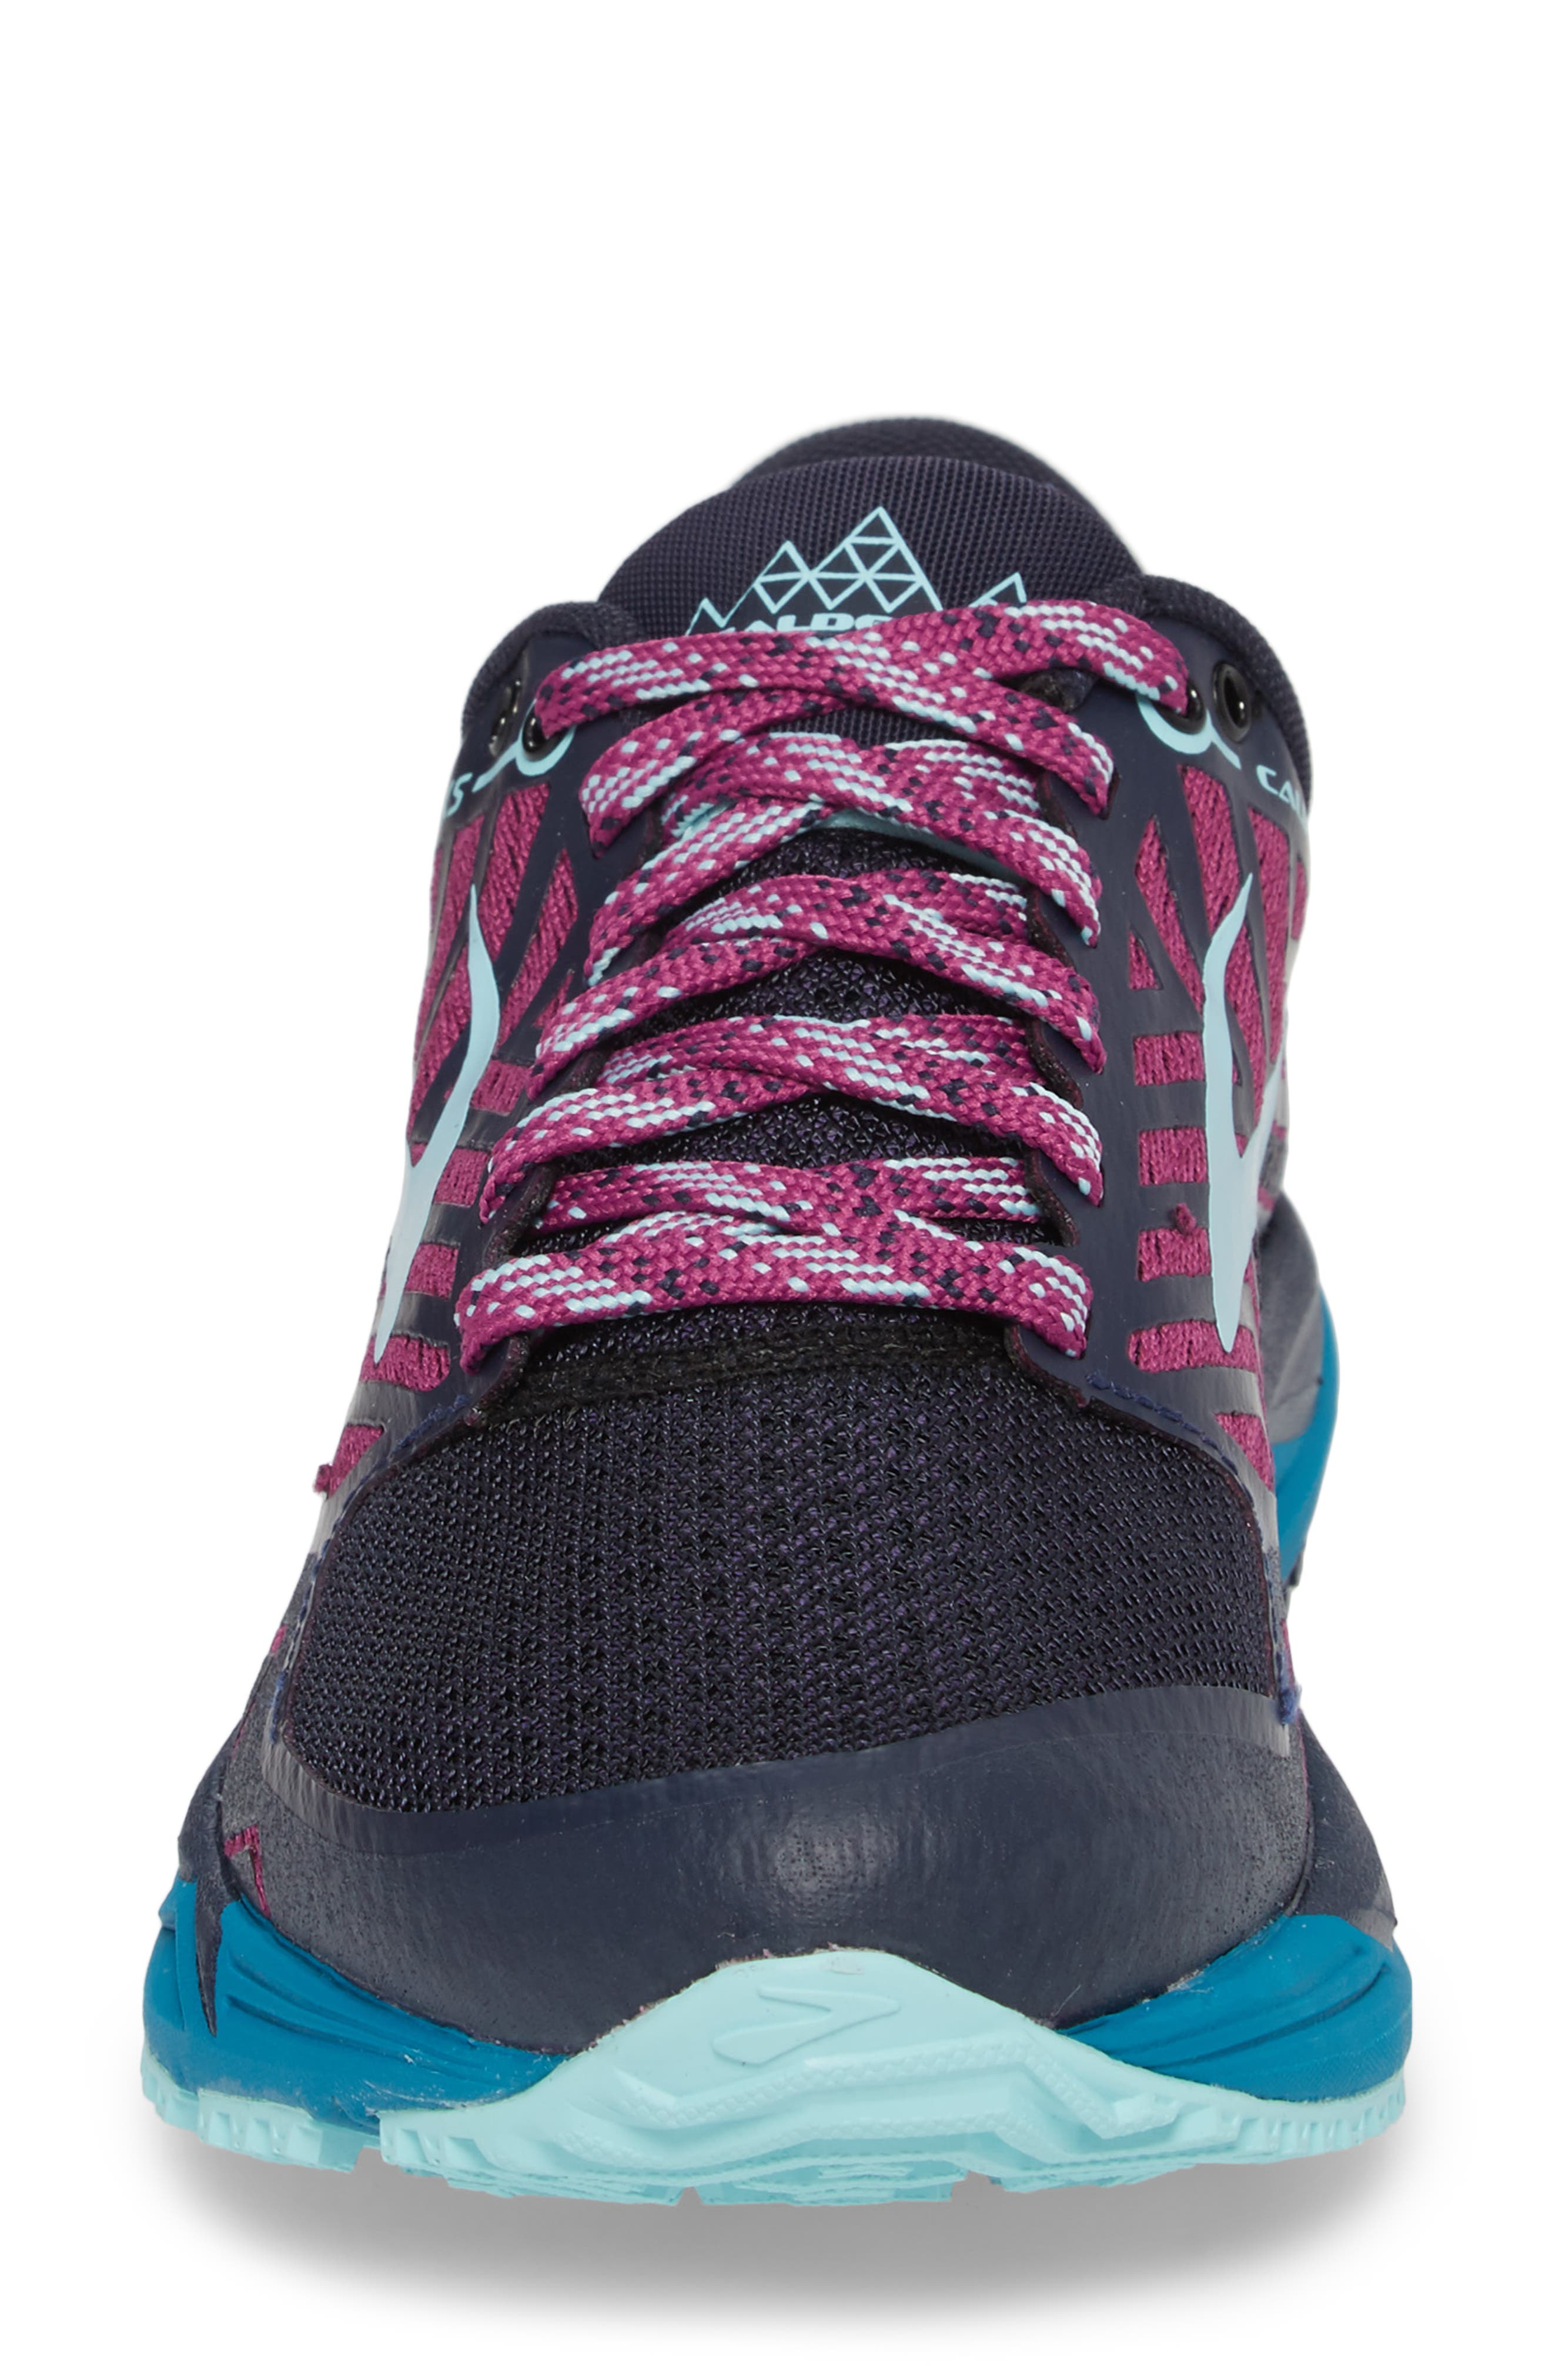 Caldera 2 Trail Running Shoe,                             Alternate thumbnail 4, color,                             NAVY/ PLUM/ ICE BLUE